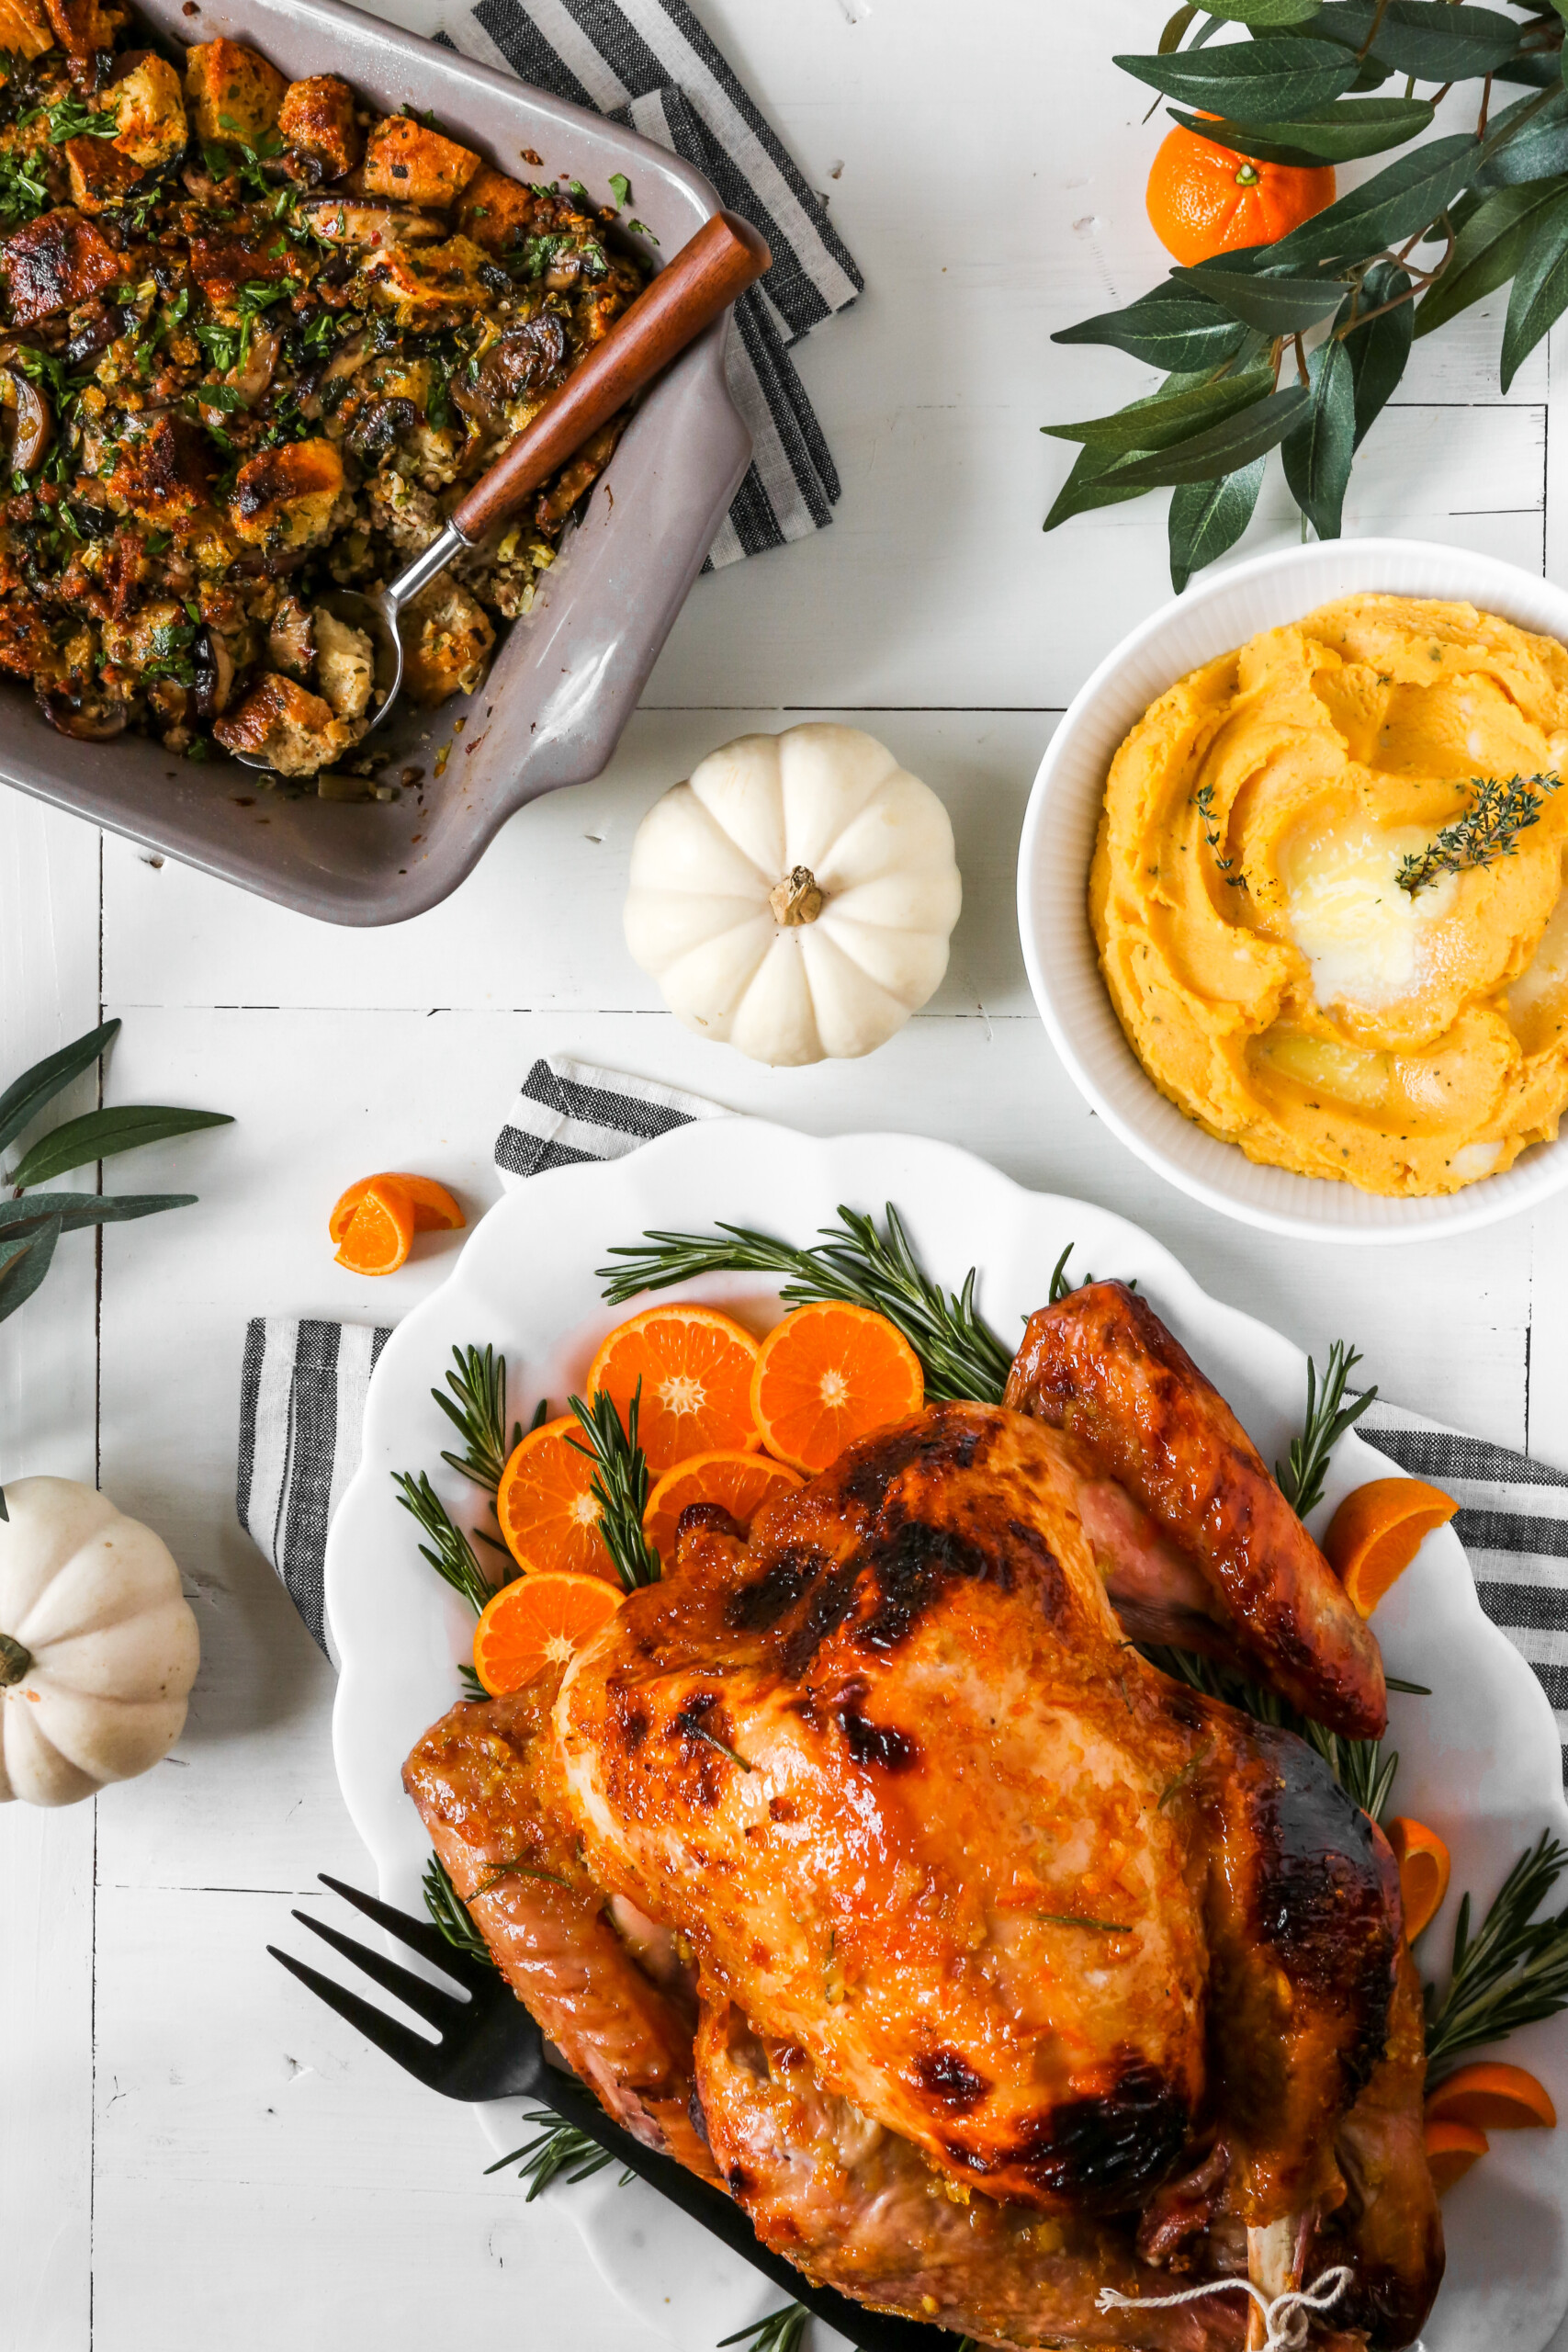 photograph of a Thanksgiving table scape and meal with a glazed roast turkey, stuffing, and mashed potatoes